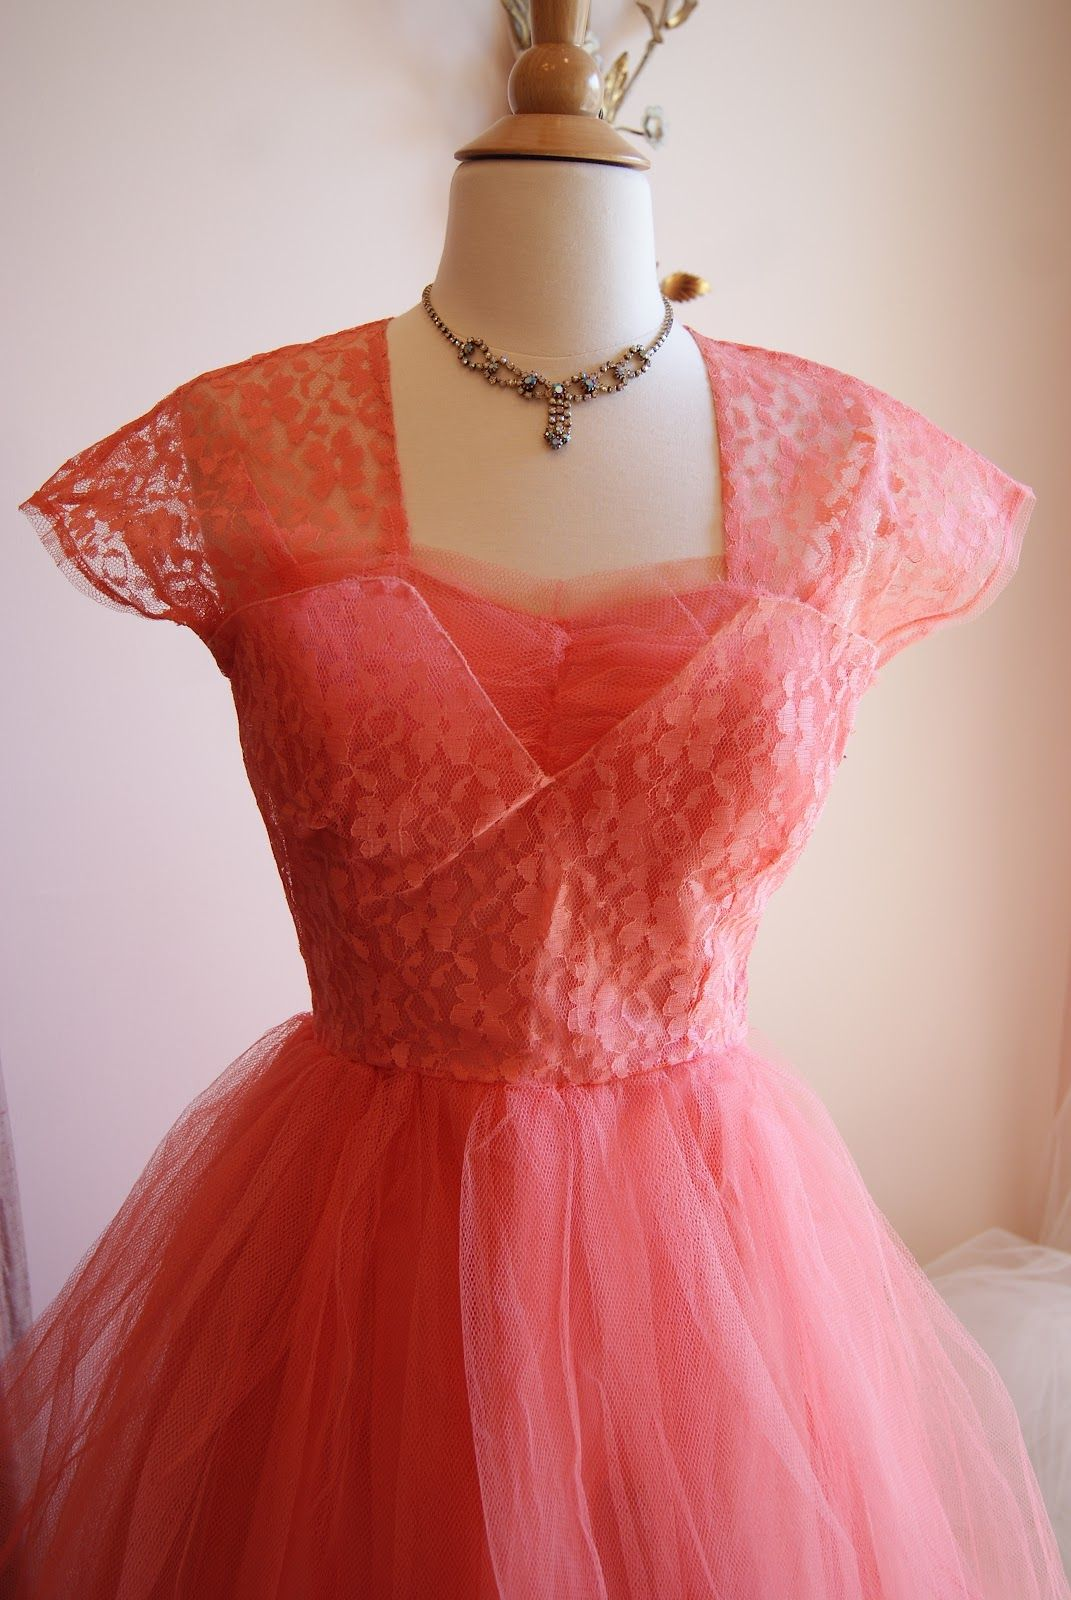 Xtabay Vintage Clothing Boutique - gorgeous 1950s prom dress ...